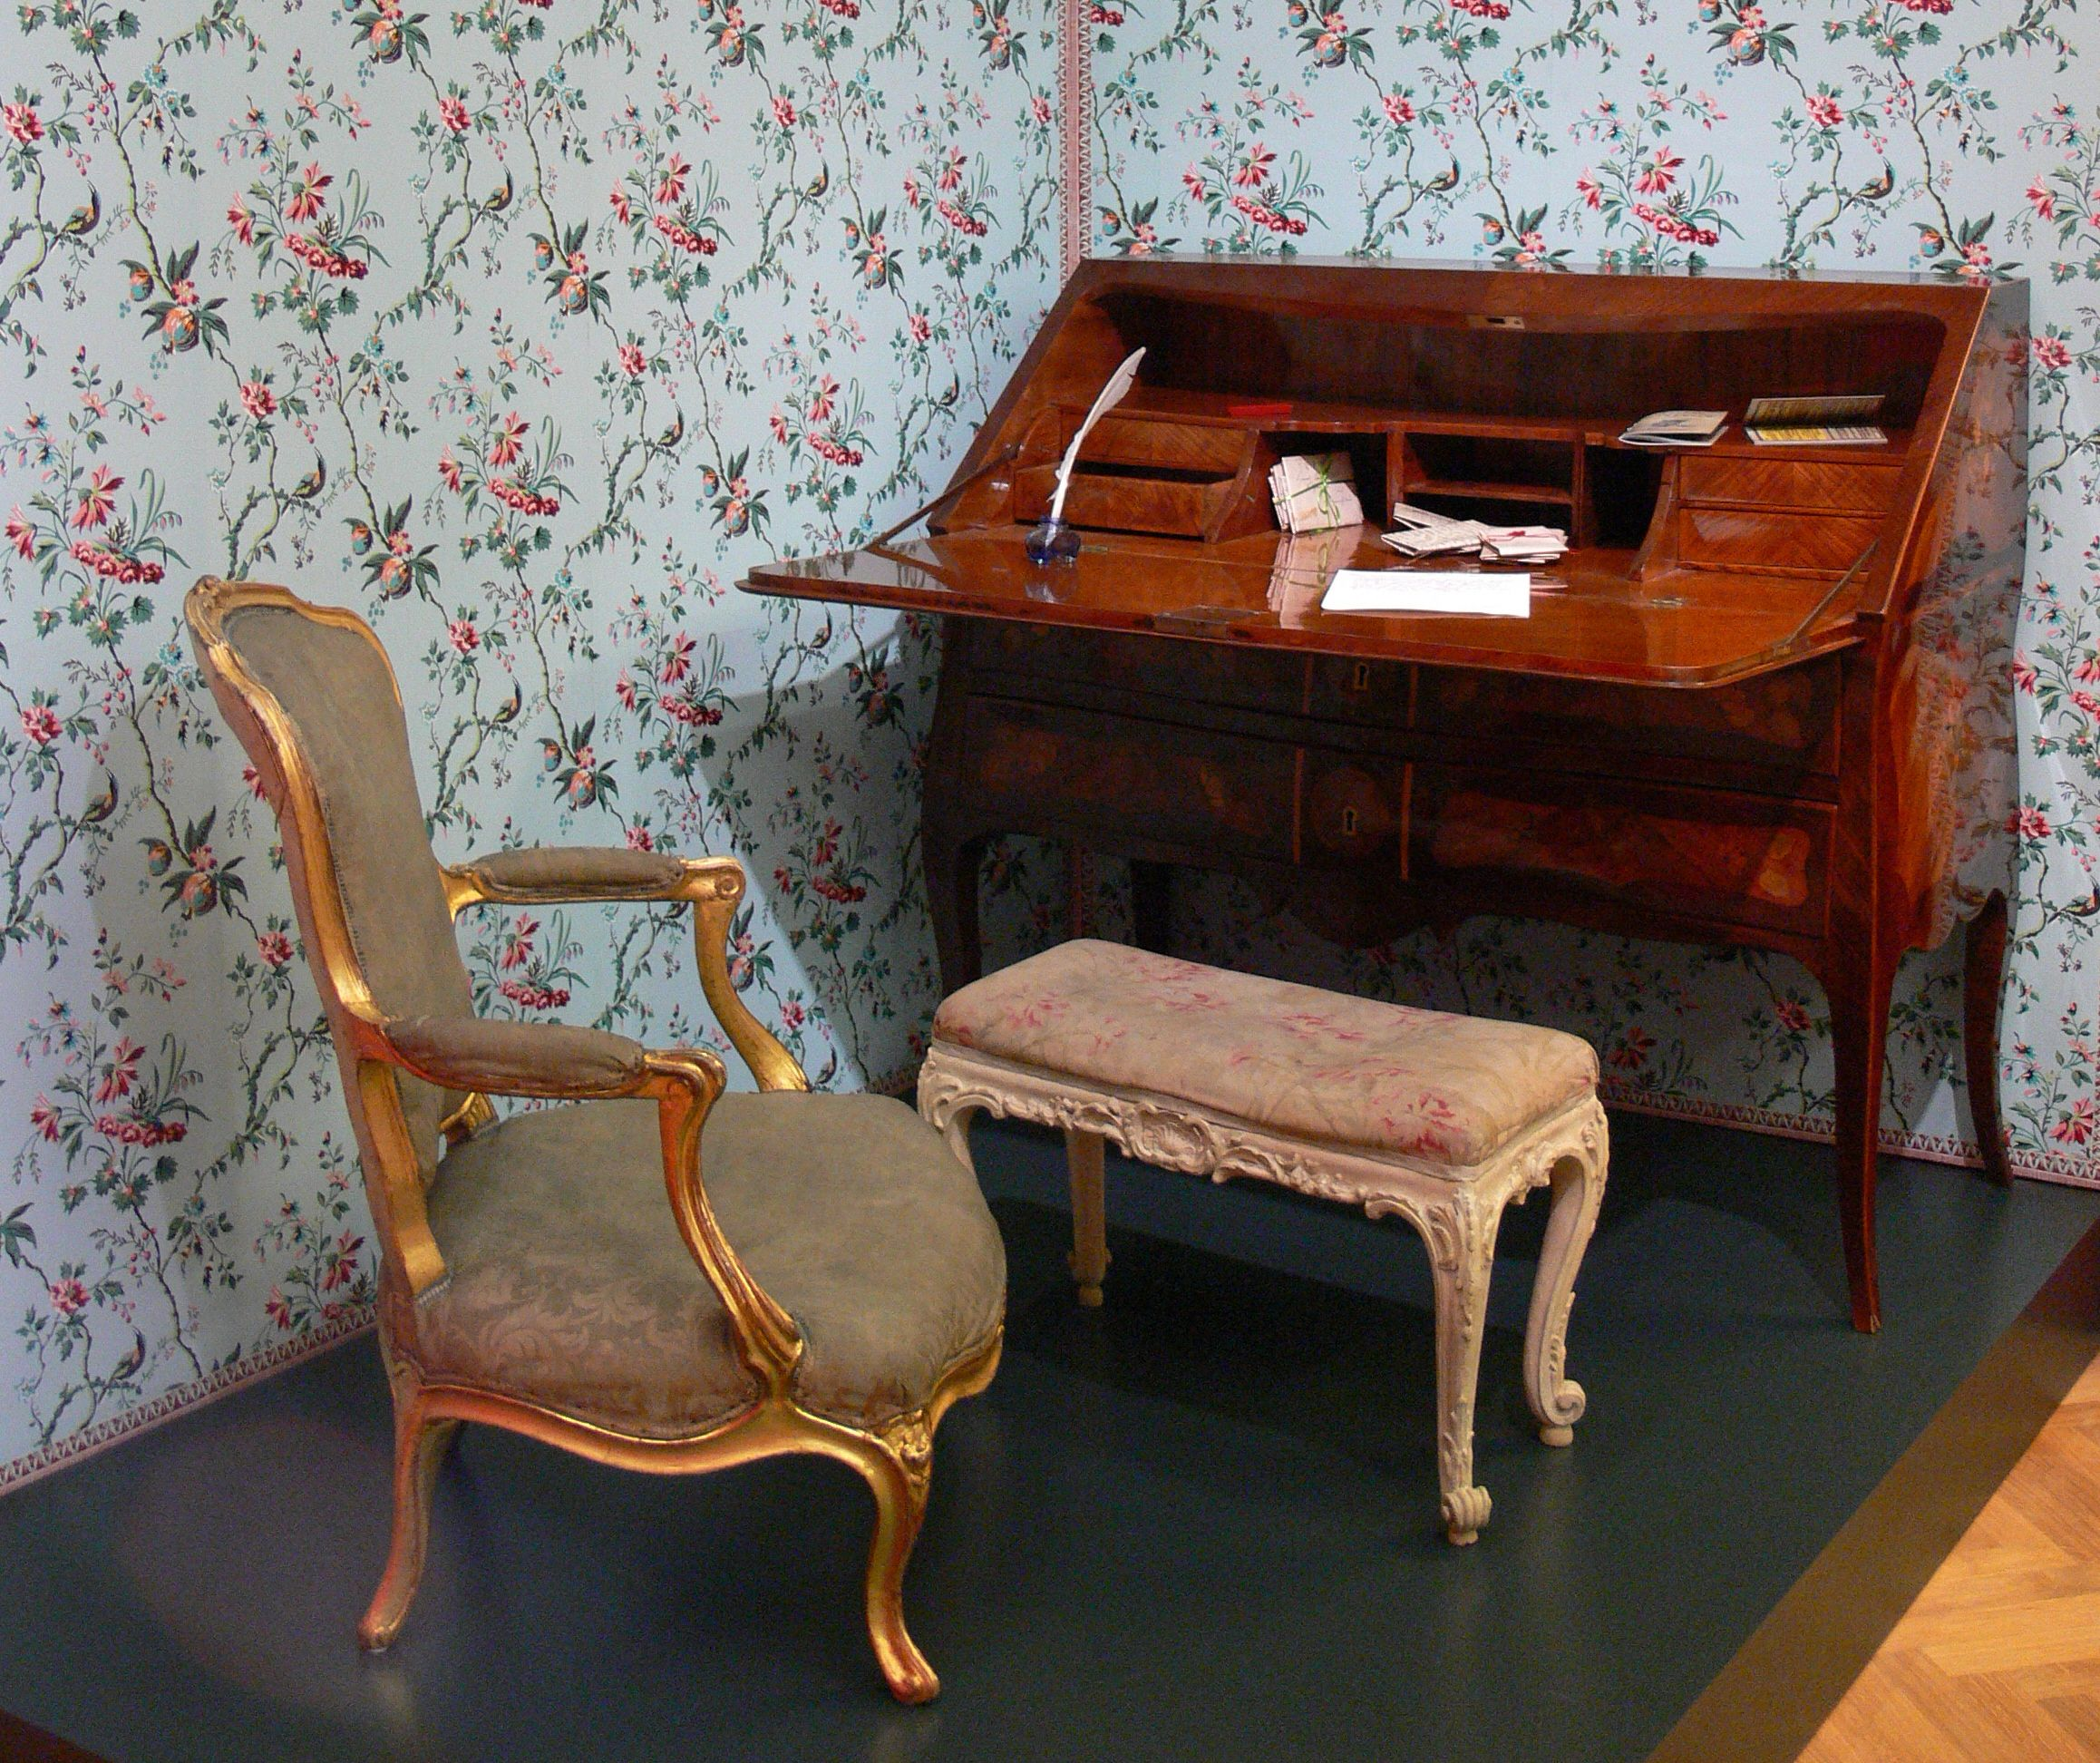 Antique furniture. Today one of the oldest antique furniture date back to 17th